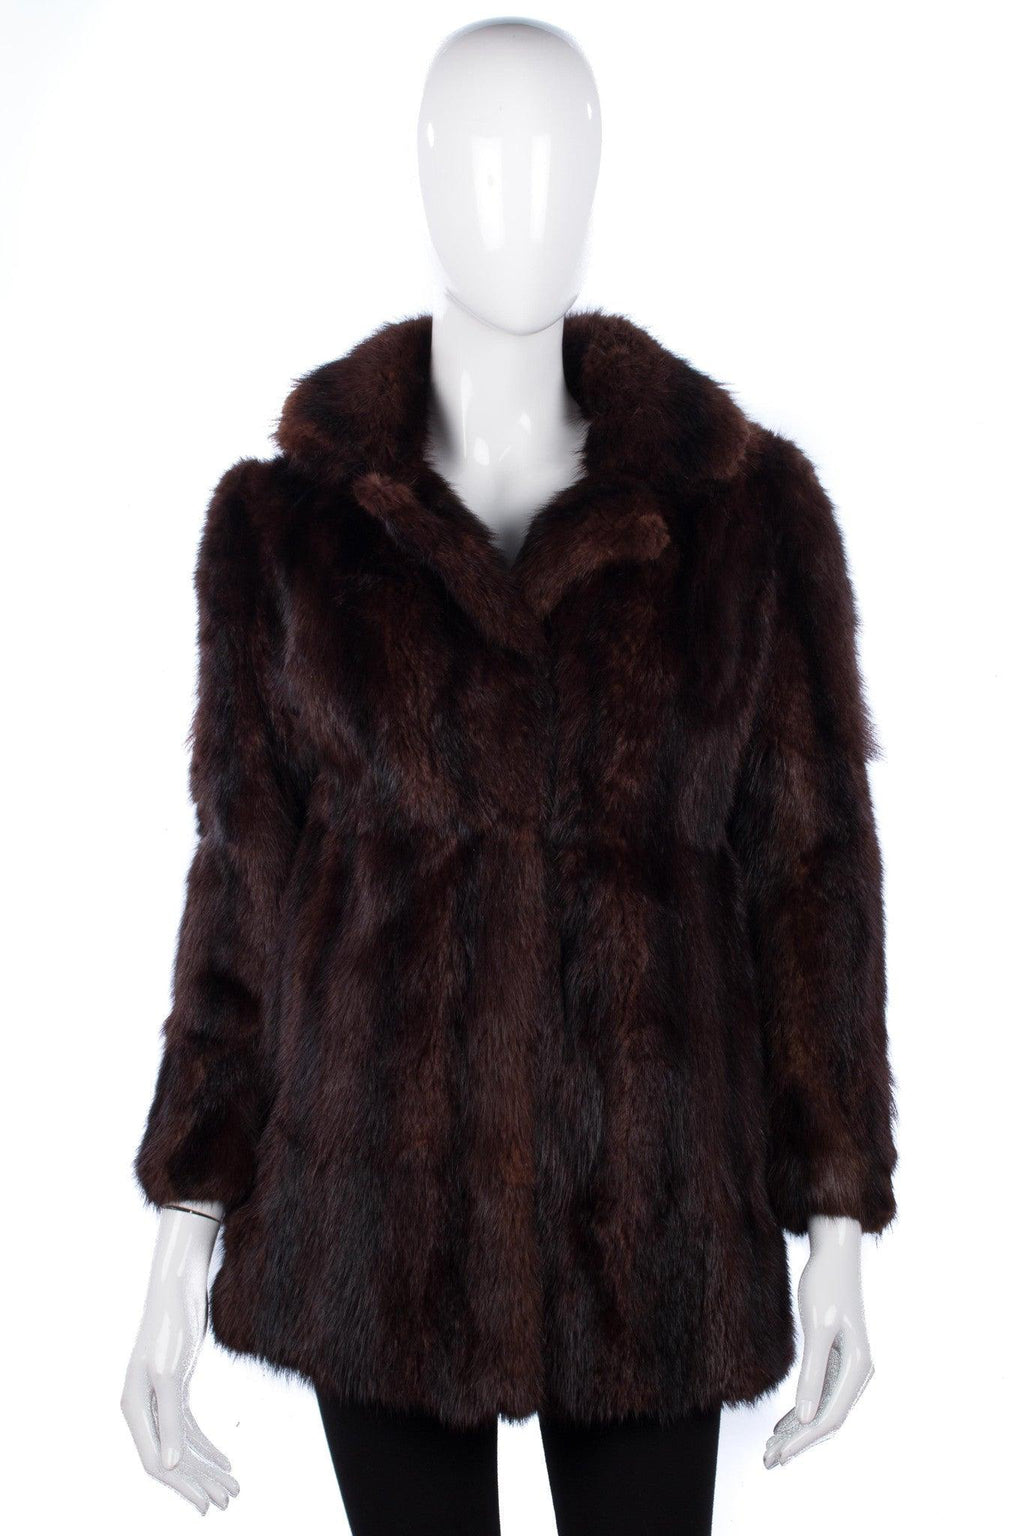 Vintage mink fur jacket by Christos A Mitsakos